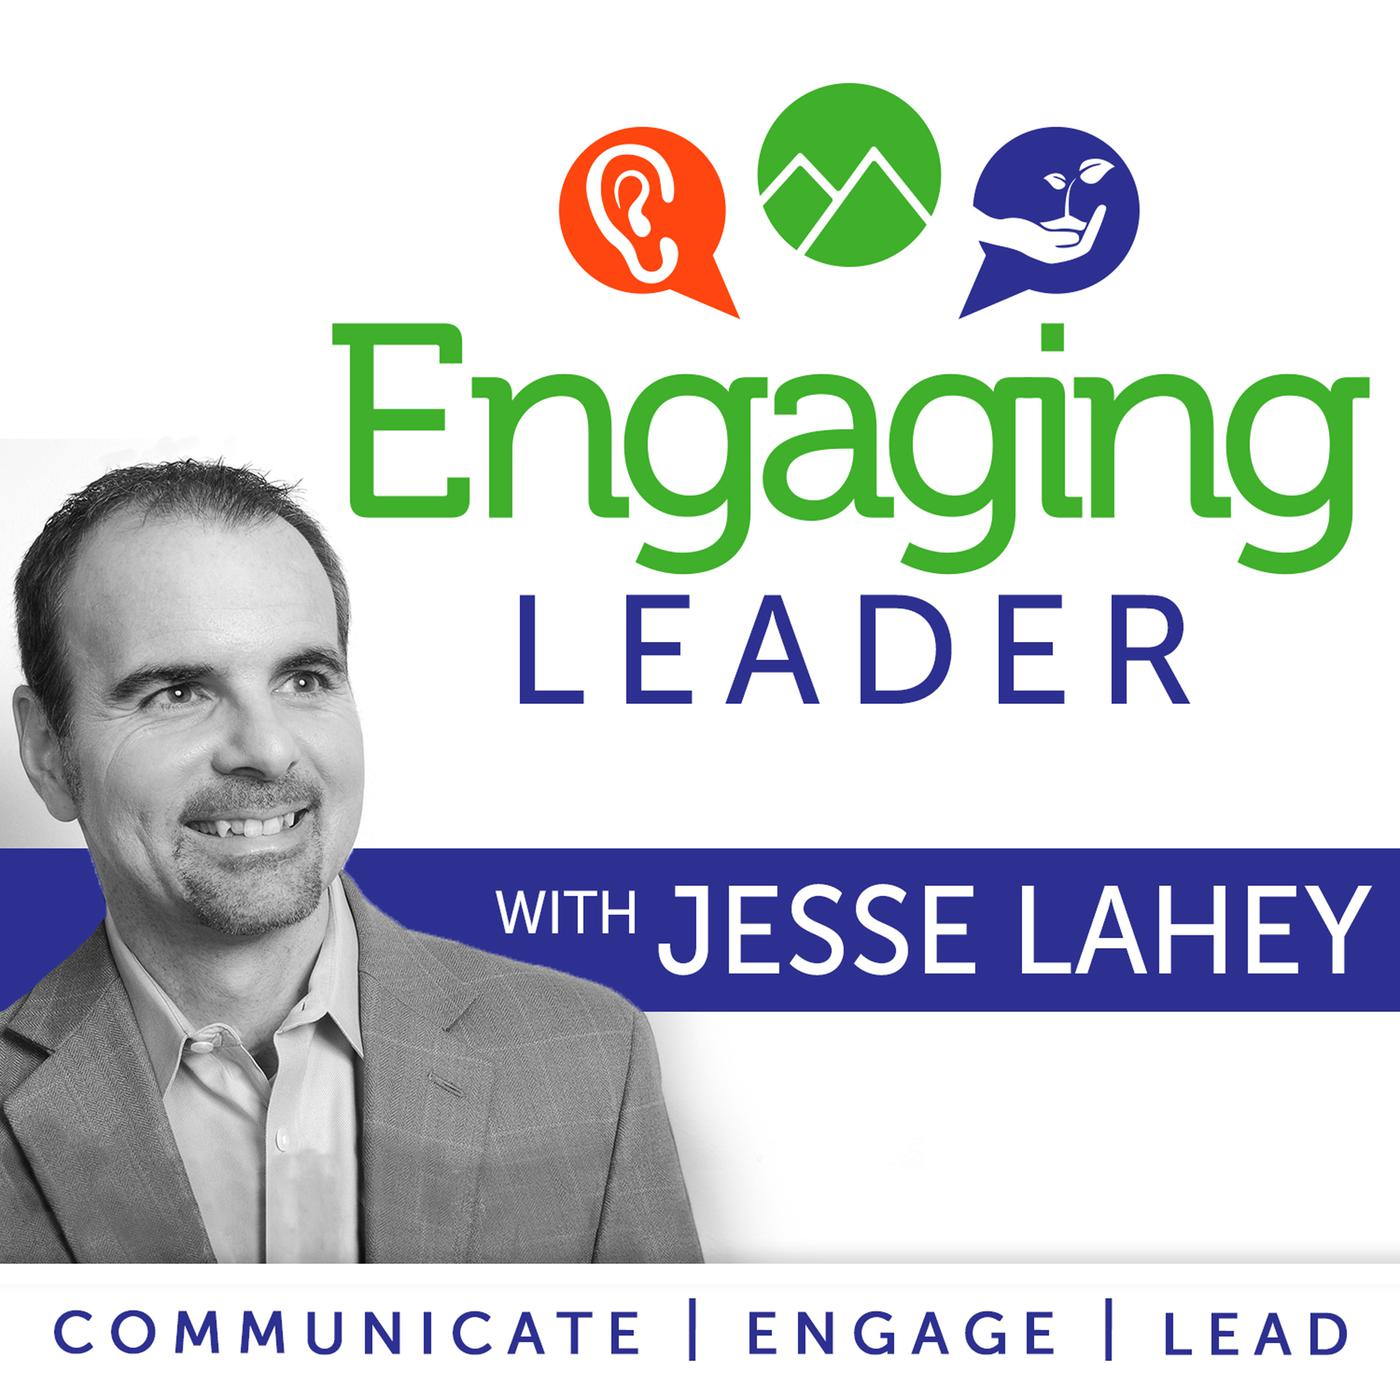 Engaging Leader: Leadership communication principles to engage your